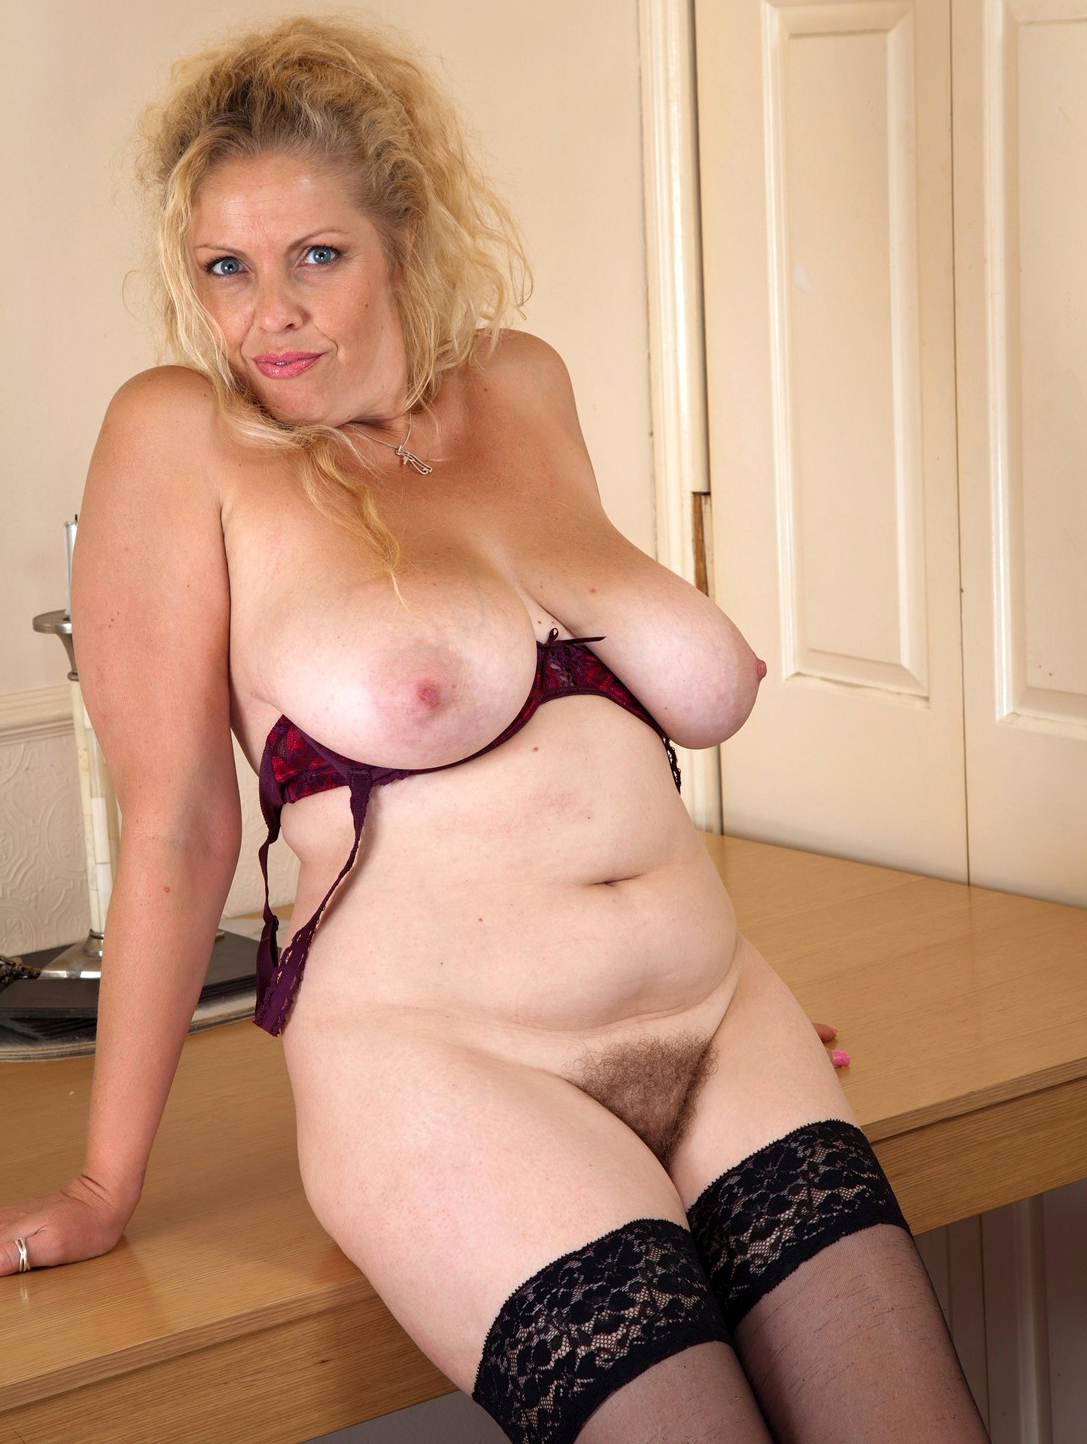 recommend deep pussy dildo on web cam see more at think, that you are